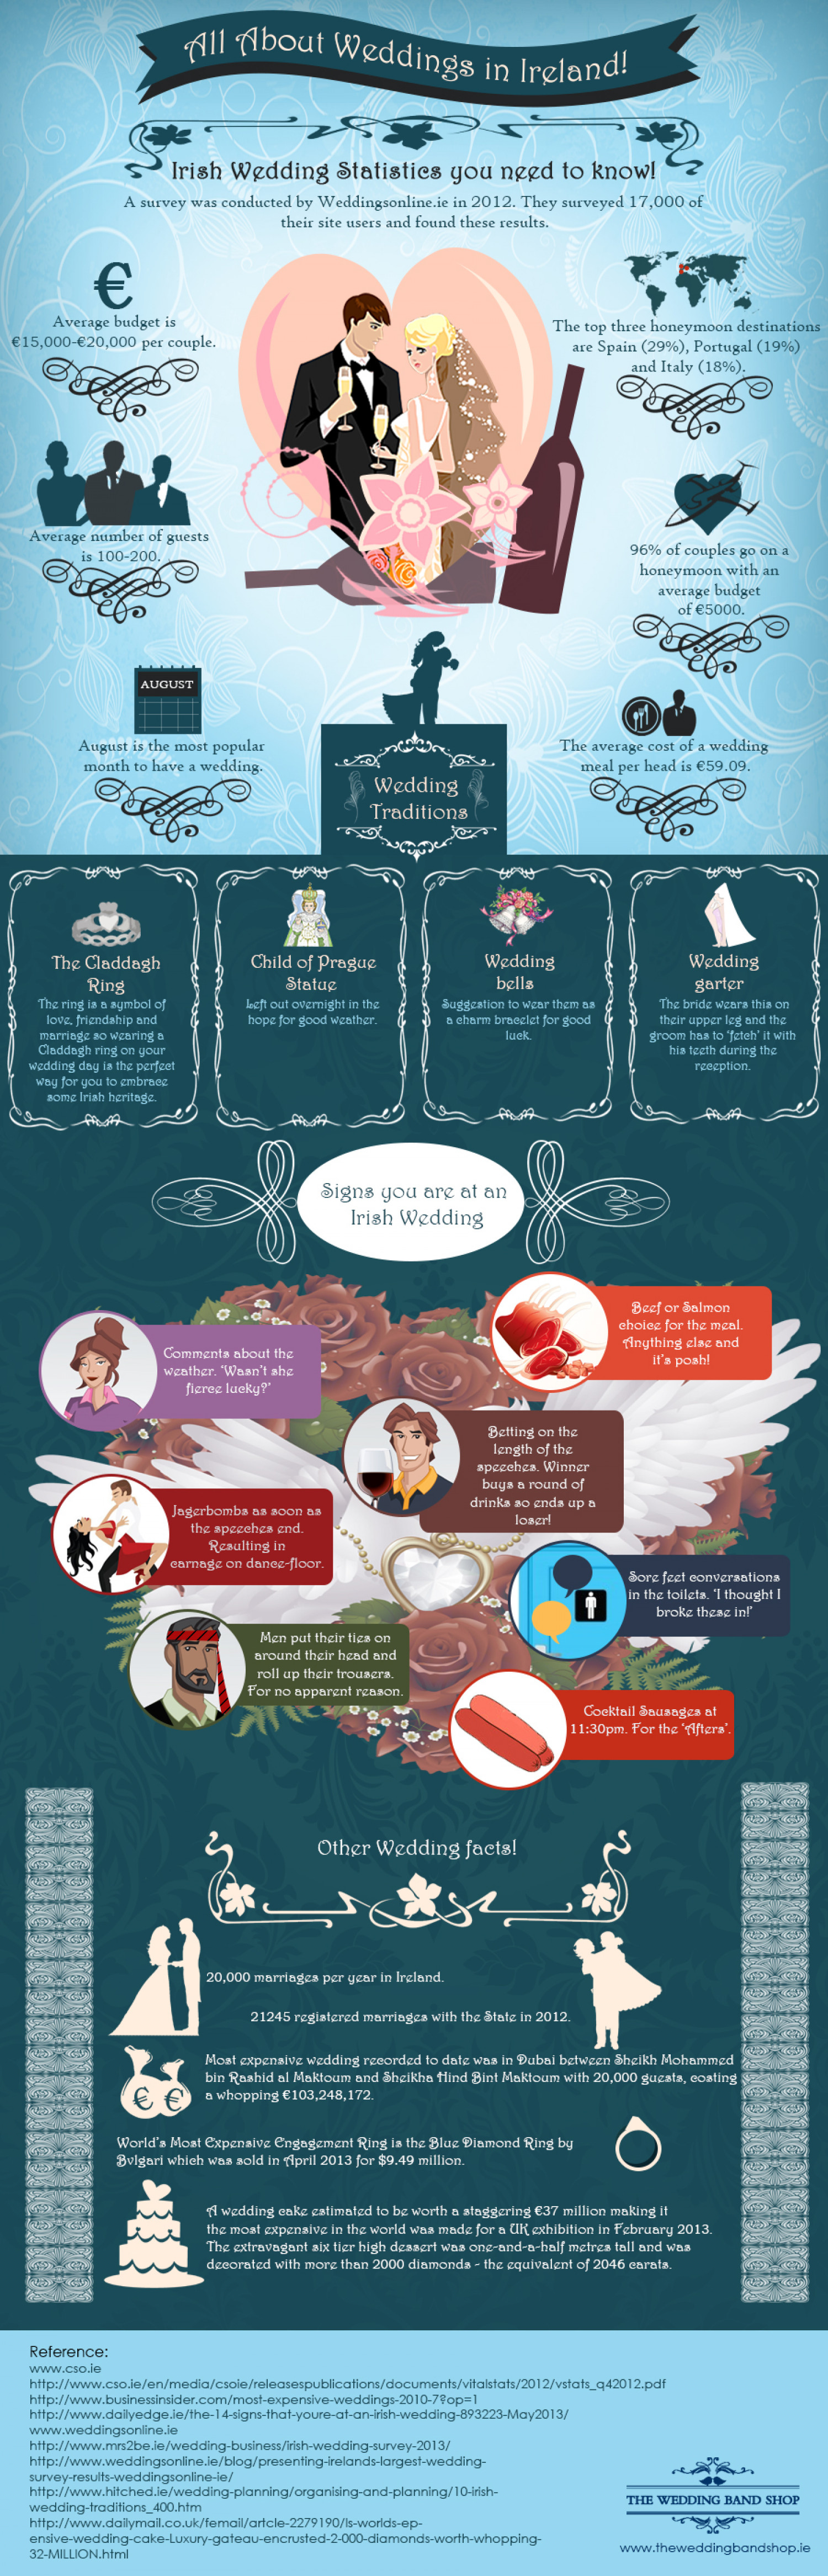 All about weddings in Ireland Infographic